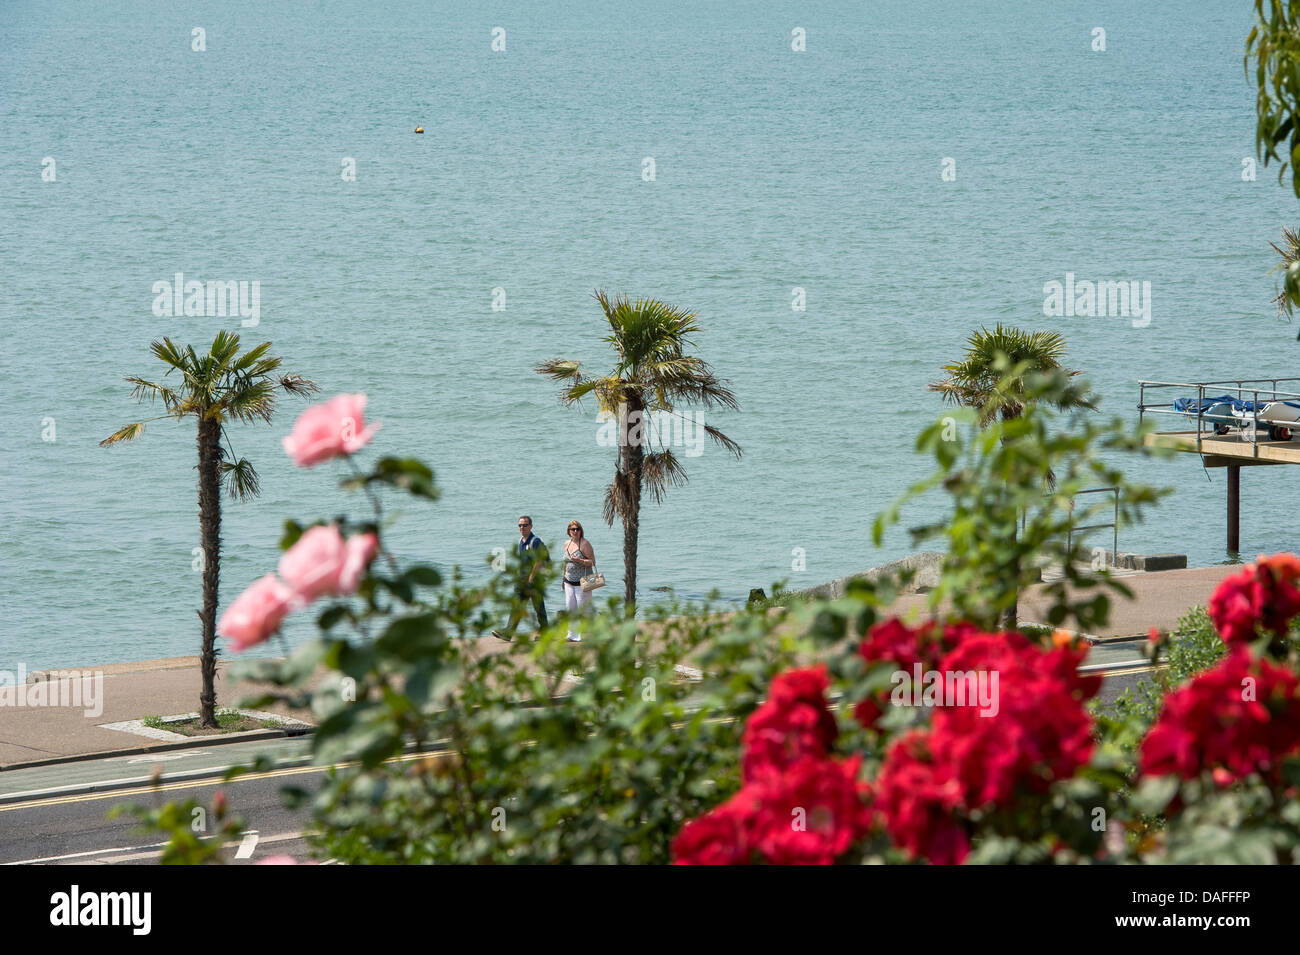 Seafront Flowers Stock Photos & Seafront Flowers Stock Images - Alamy